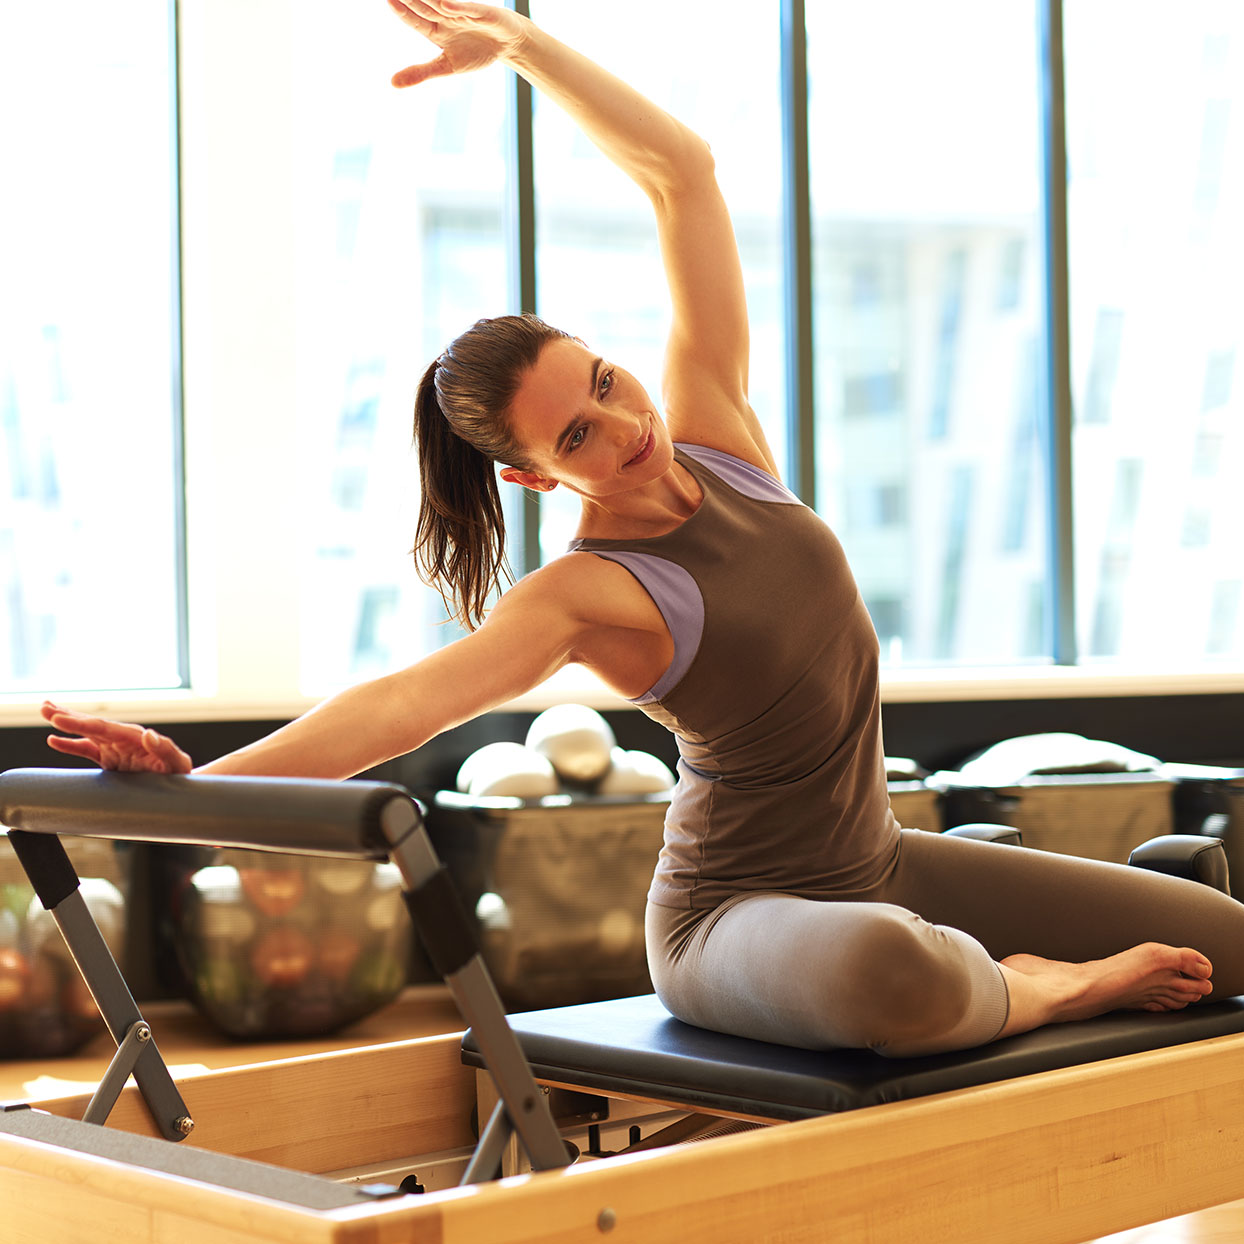 A woman uses a Pilates reformer